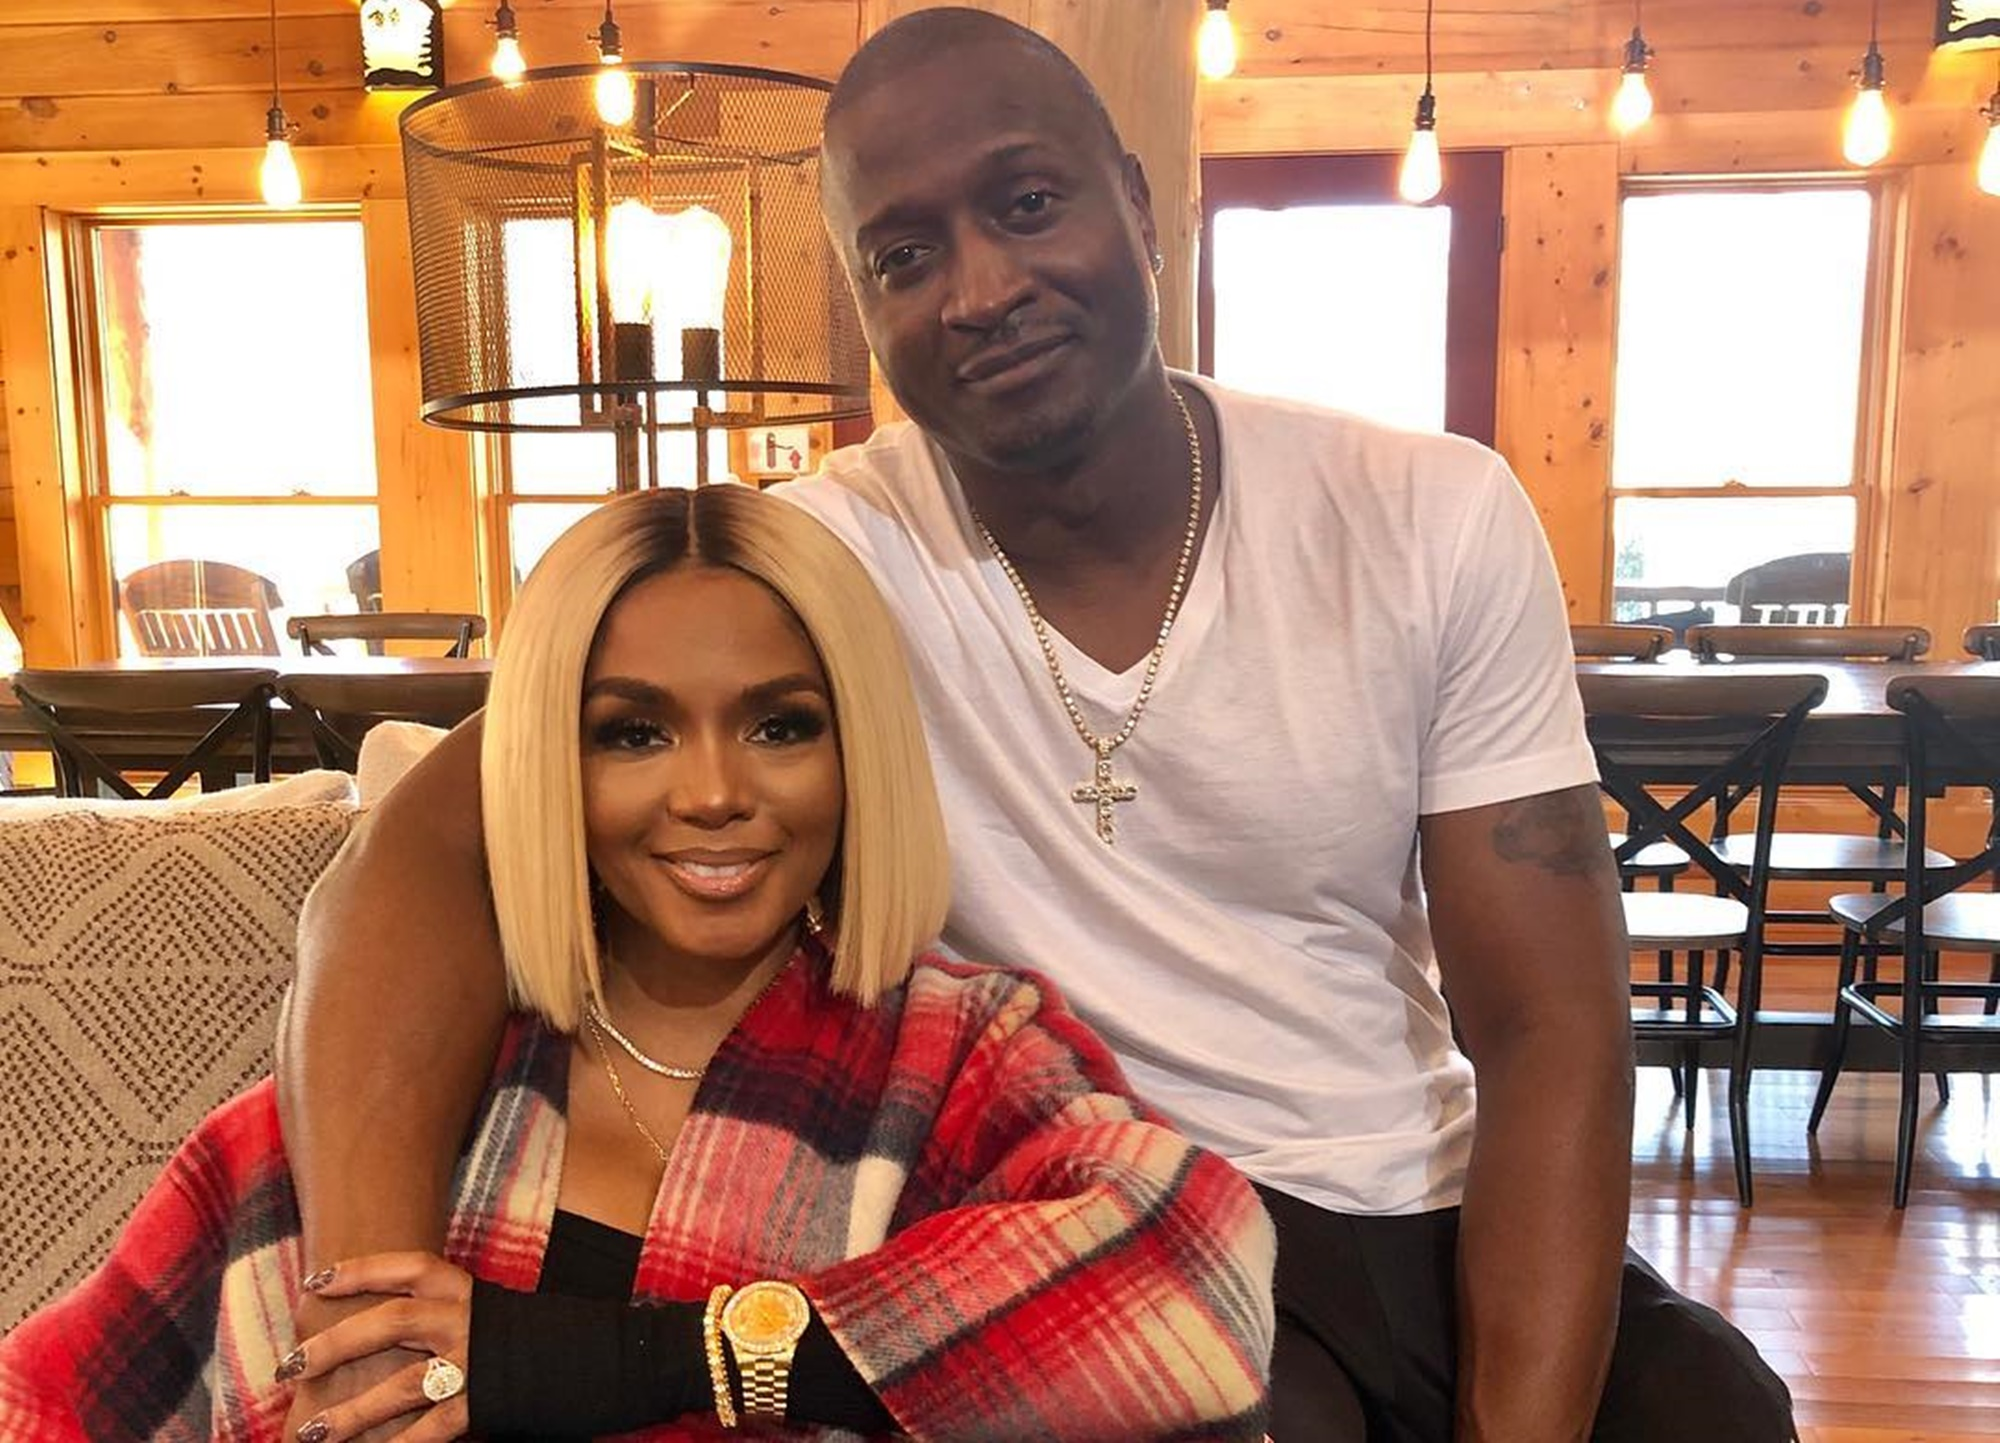 """rasheeda-frost-catches-kirk-off-guard-with-surprise-birthday-cake-and-touching-words-pictures-prove-that-love-hip-hop-atlanta-star-jasmine-washington-is-ancient-history"""